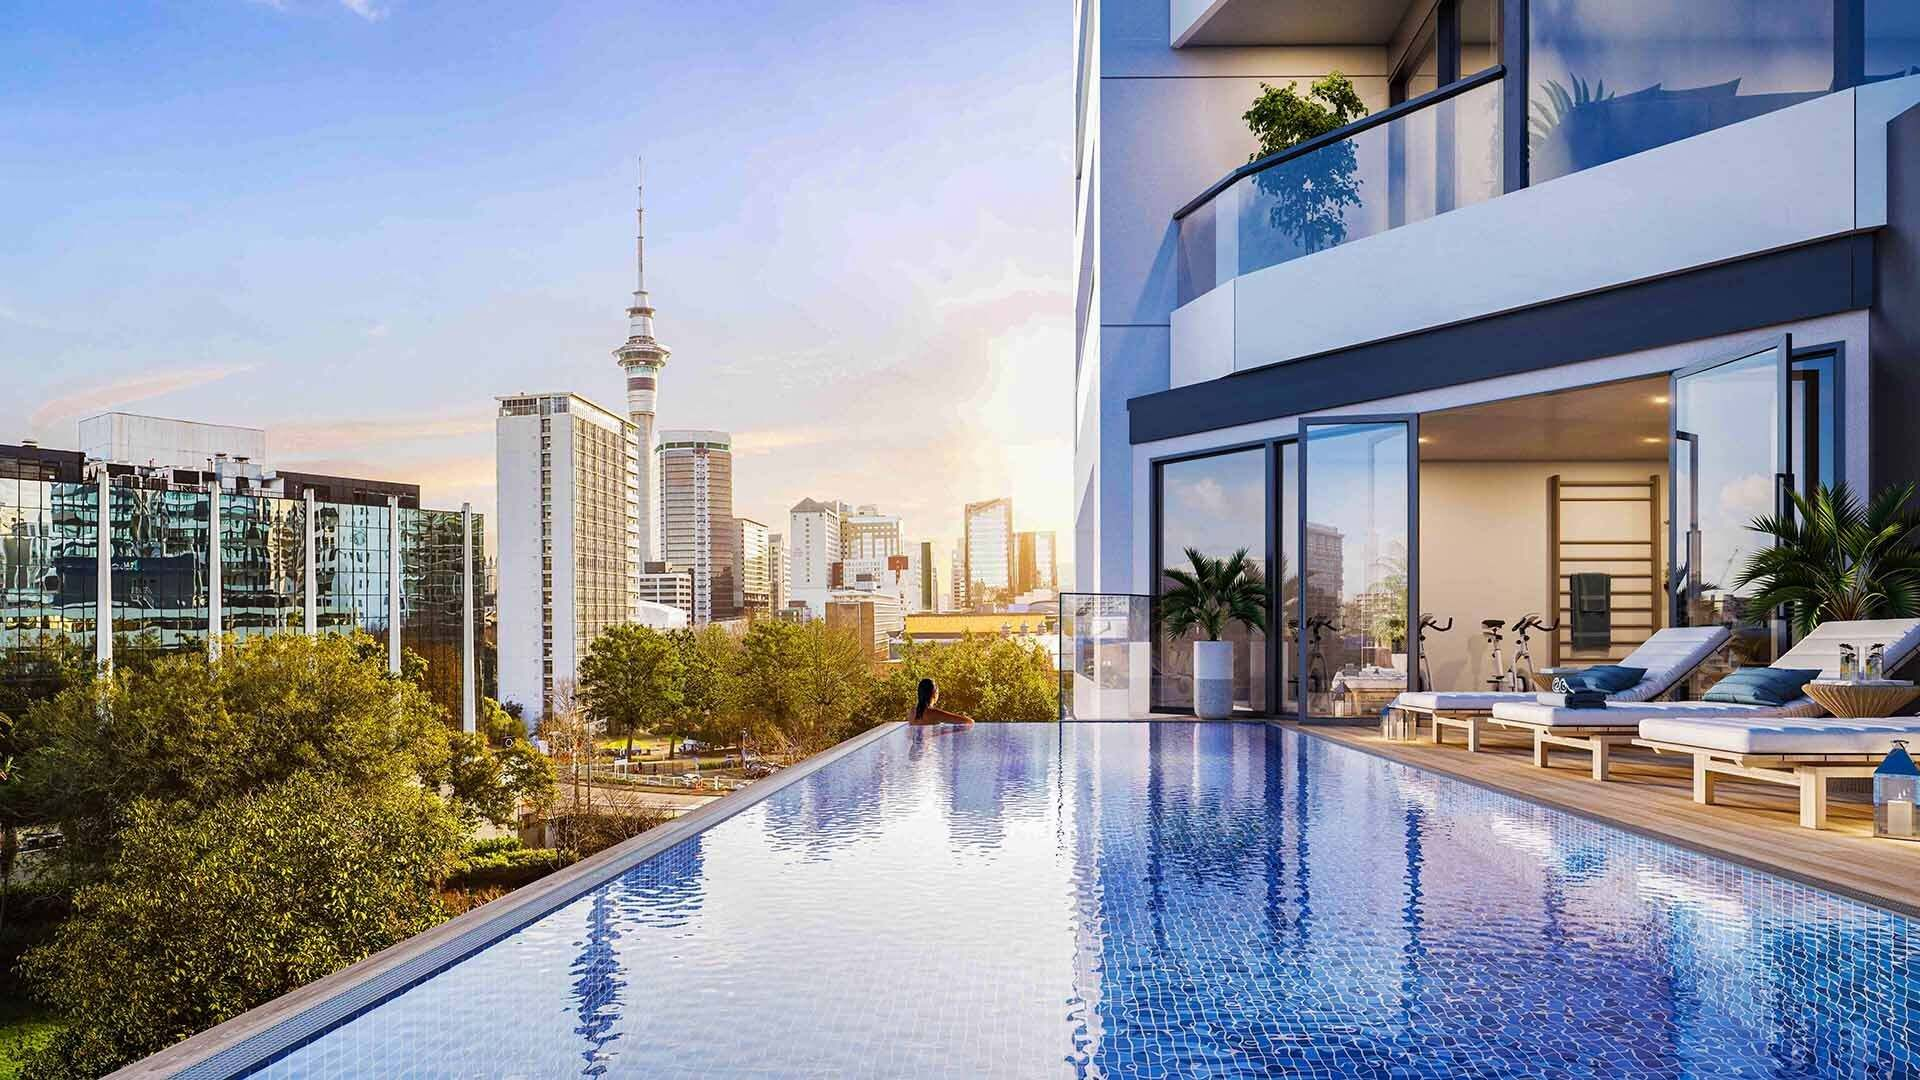 Auckland Central 1房 No Restriction for Overseas Buyers